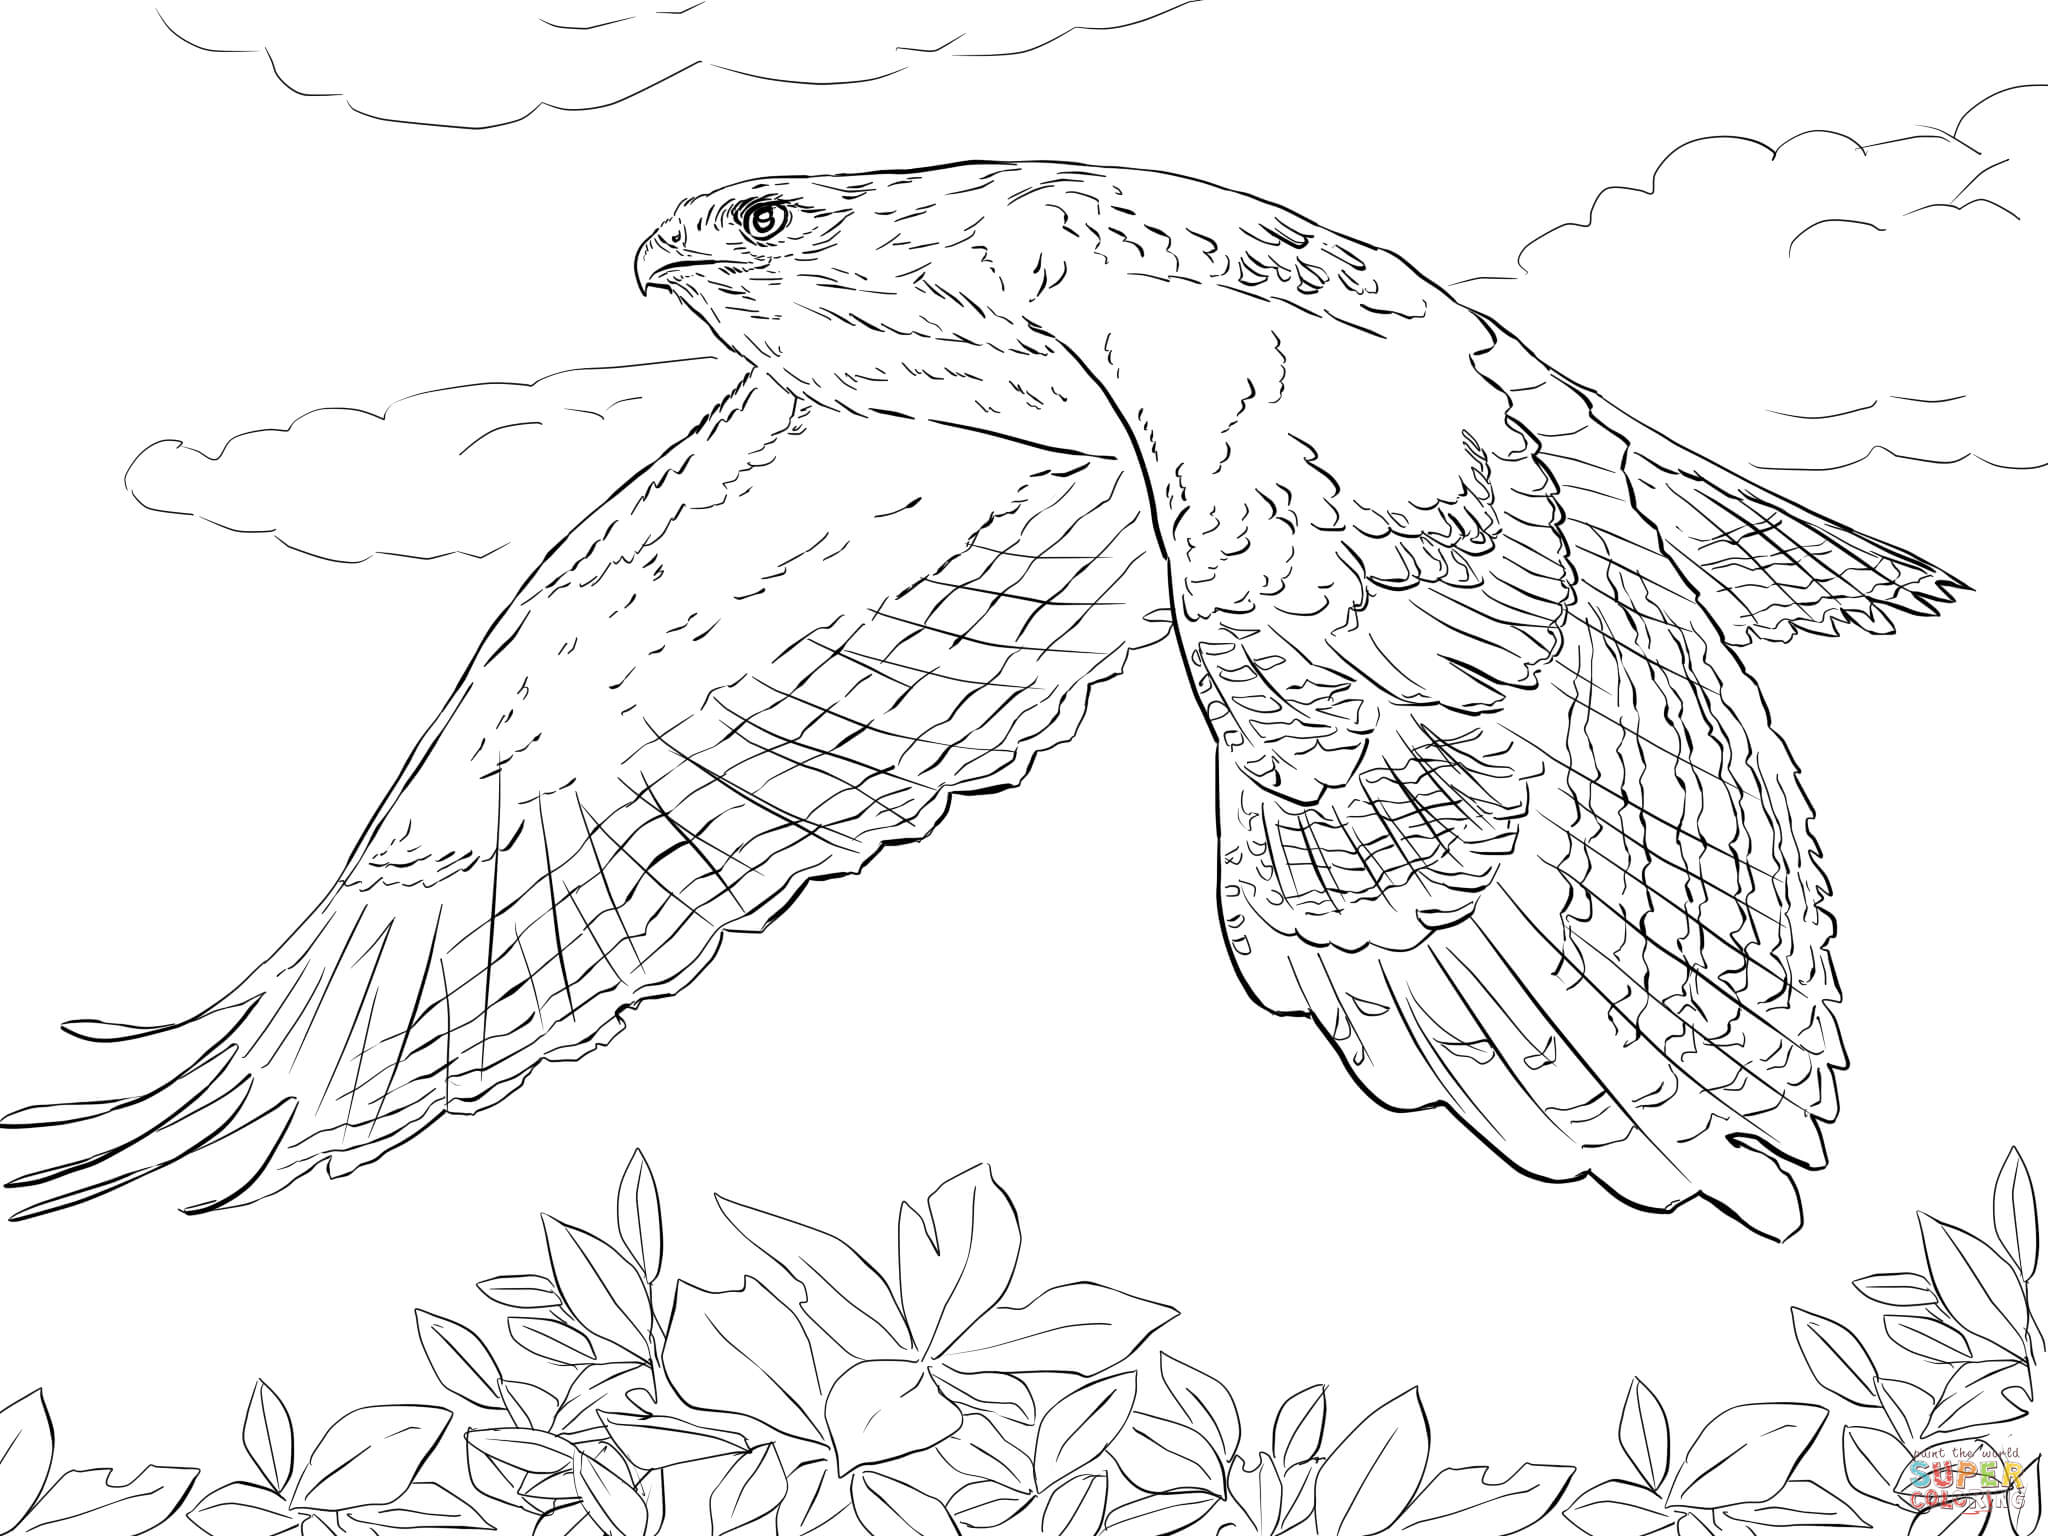 Red Tailed Hawk in Flight coloring page | Free Printable Coloring Pages